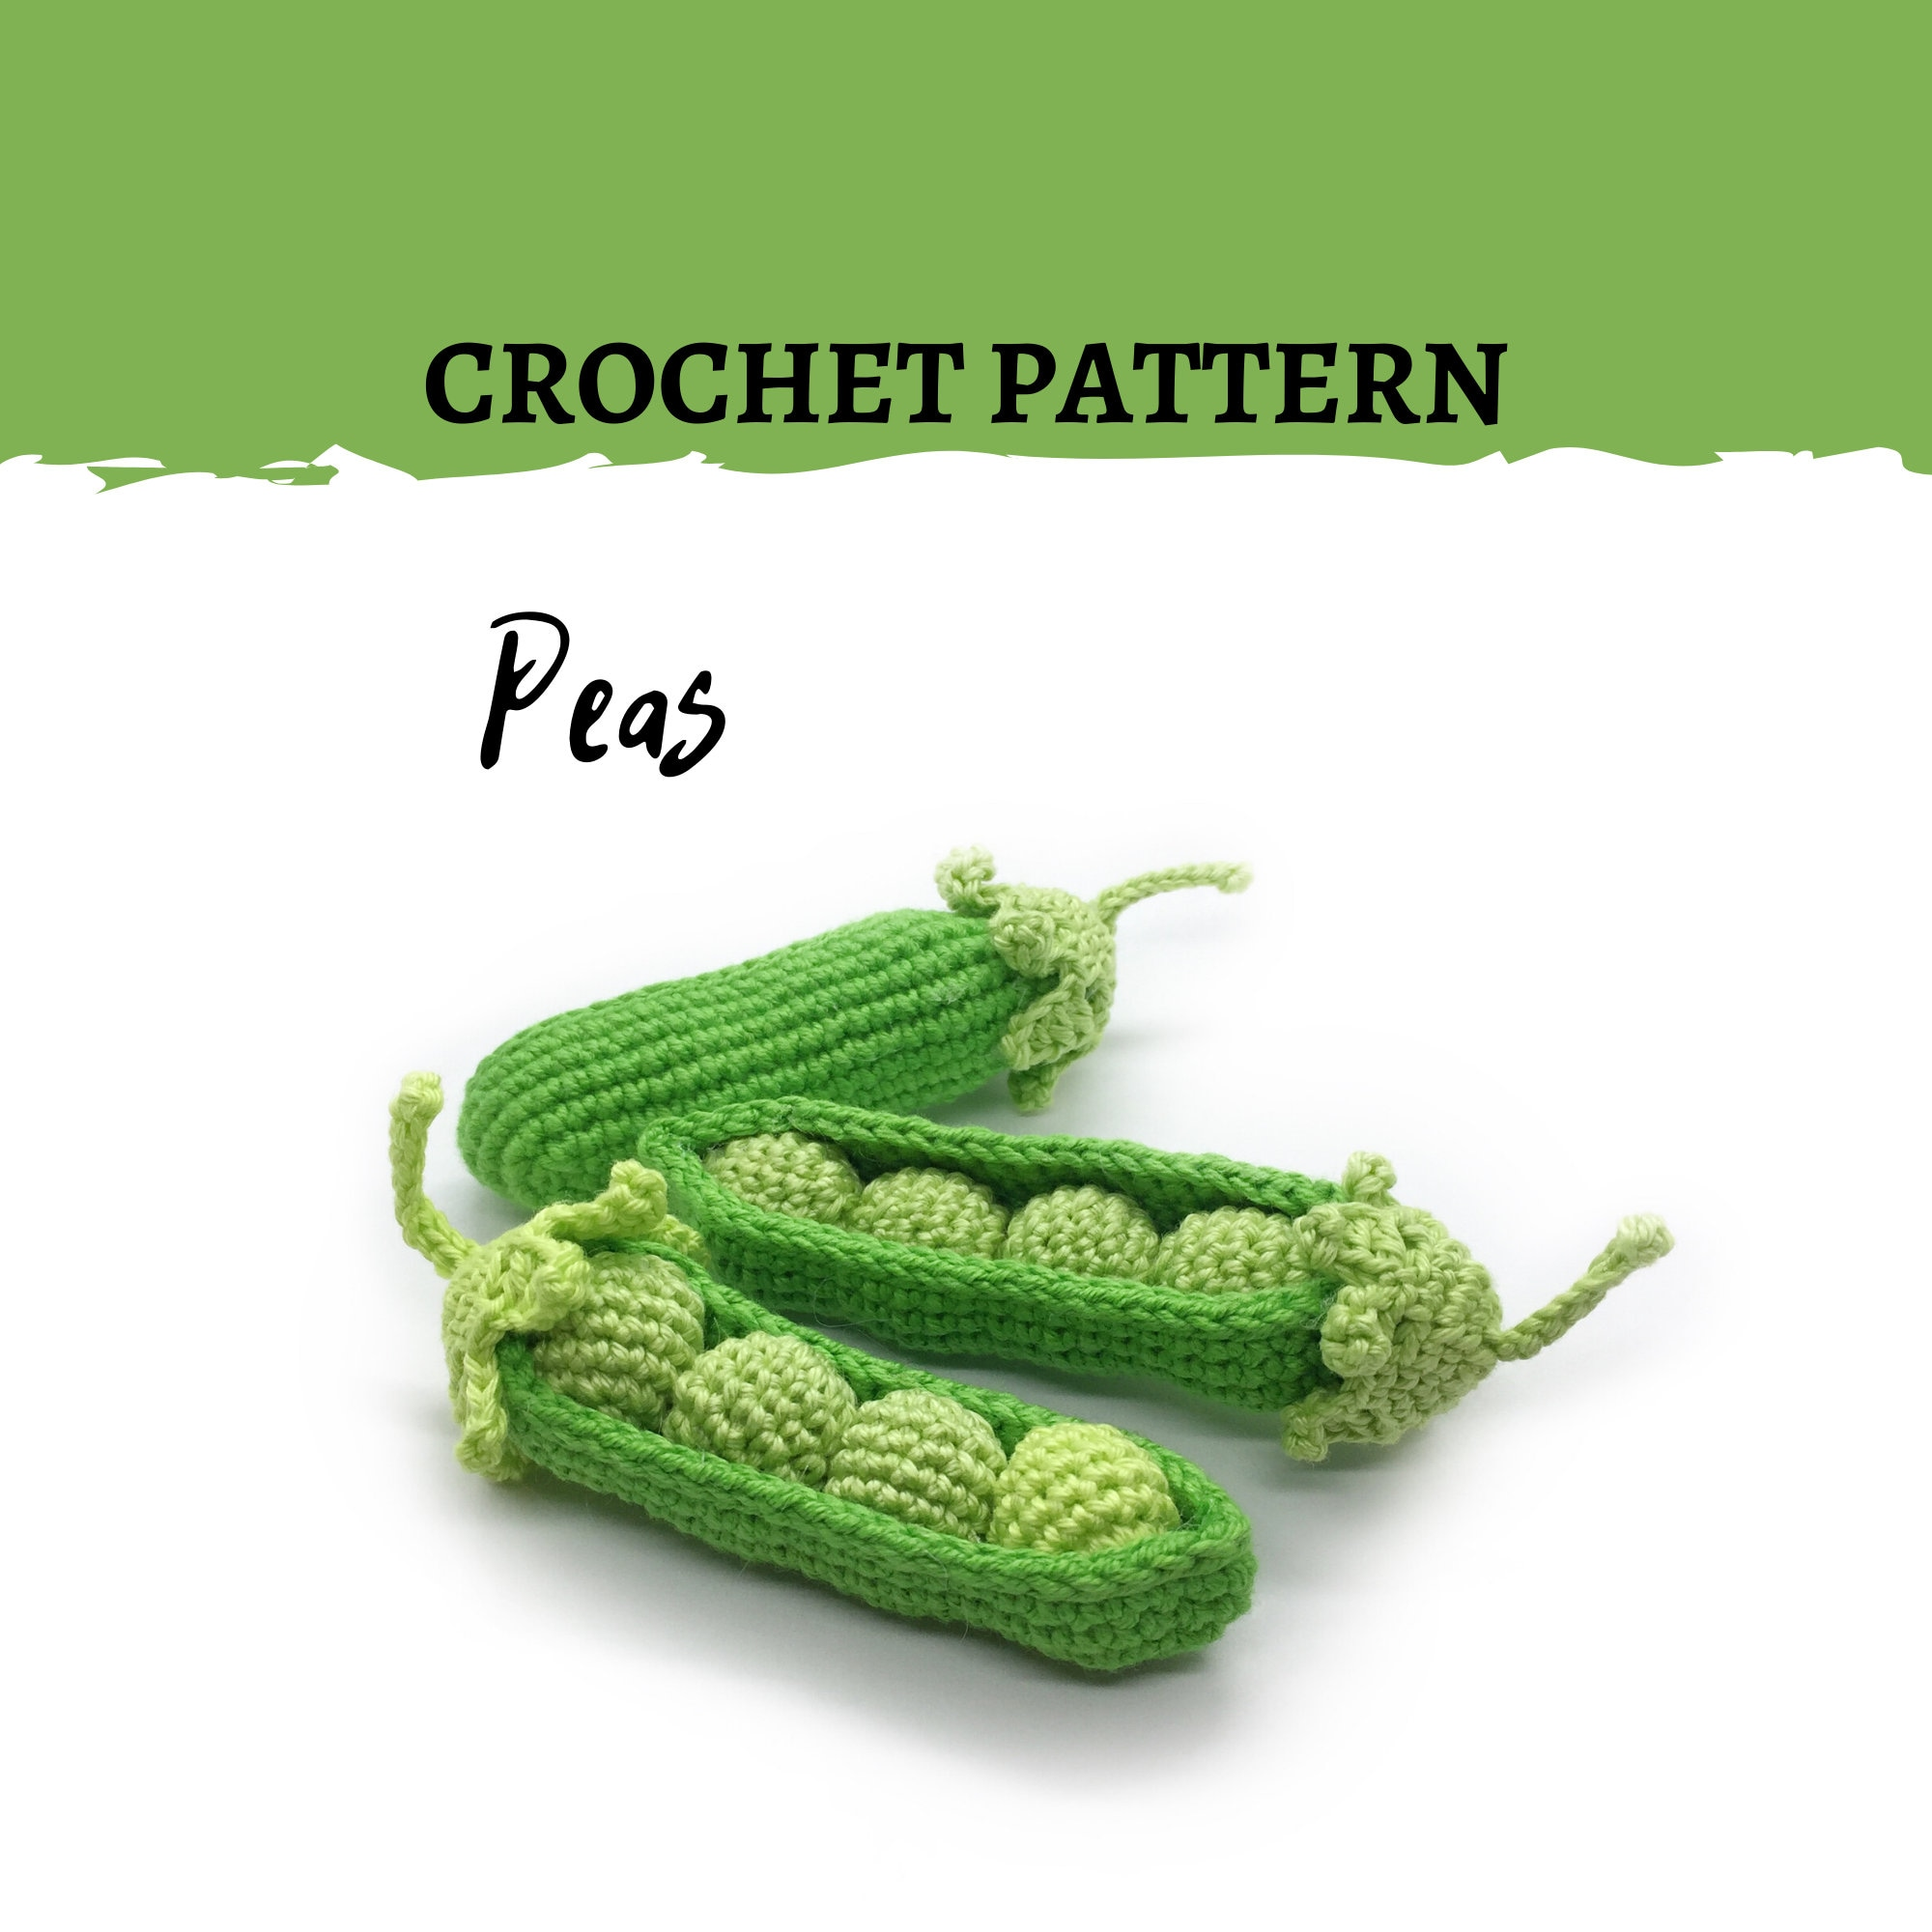 Crochet Fruit And Vegetable Patterns All The Best Ideas | 2000x2000